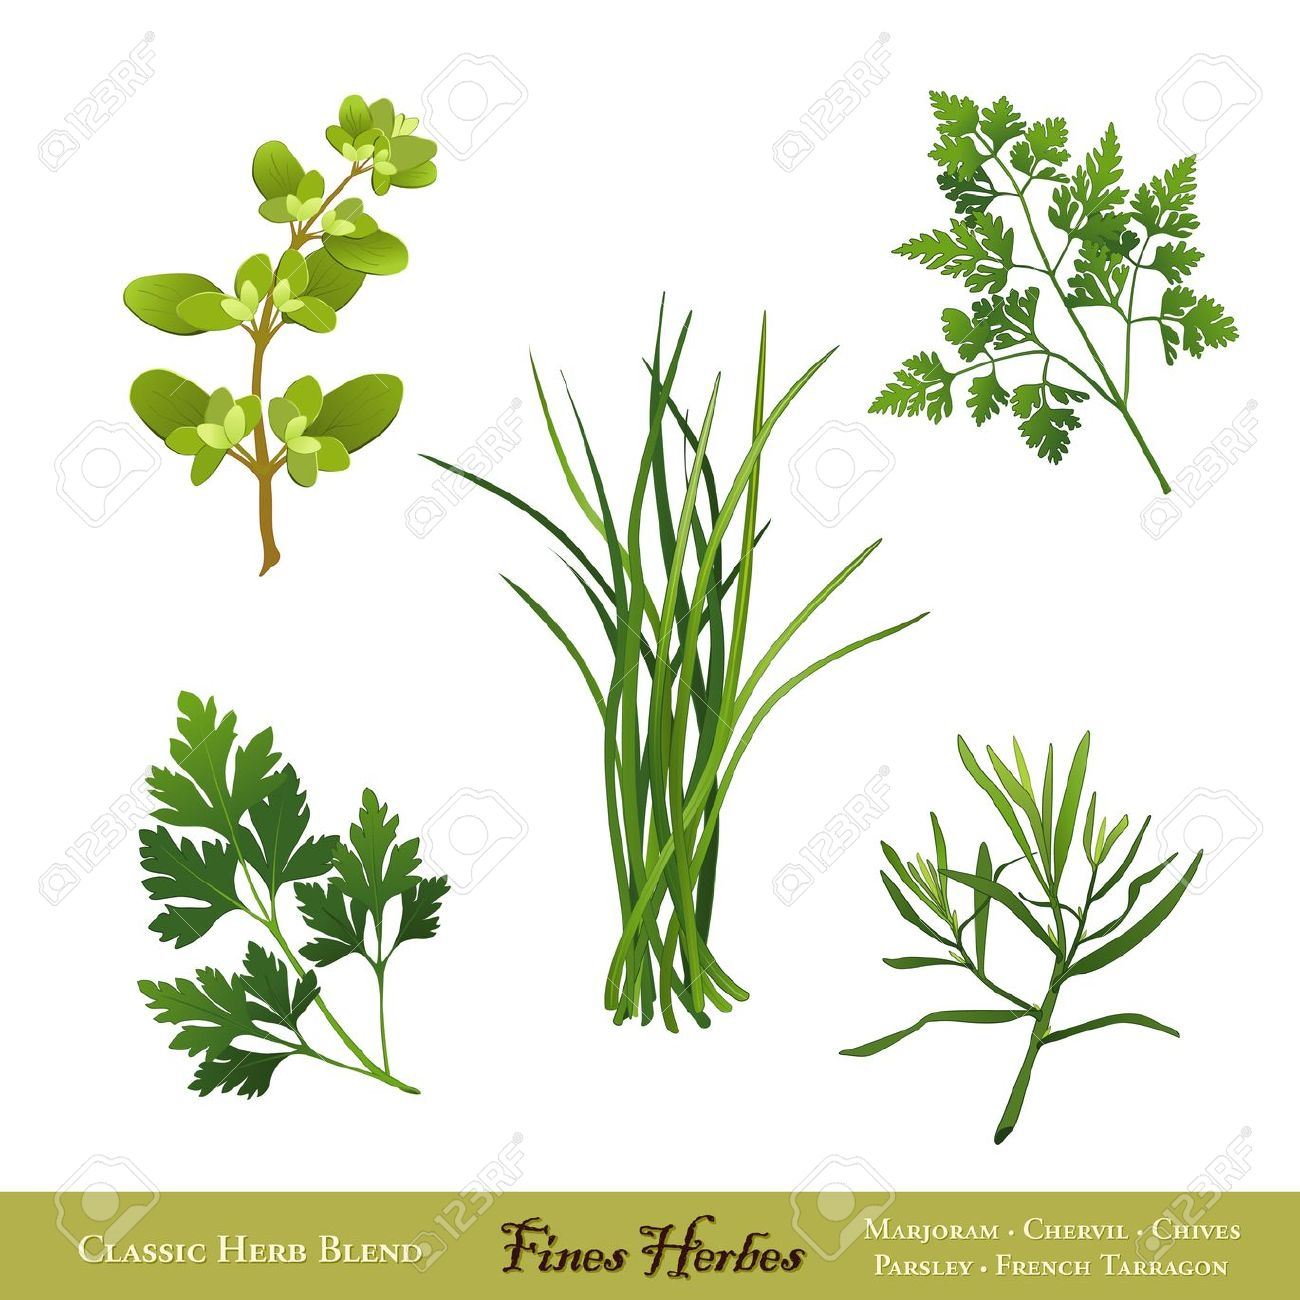 Fines Herbes, Classic French Herb Blend Sweet Marjoram, Chervil.